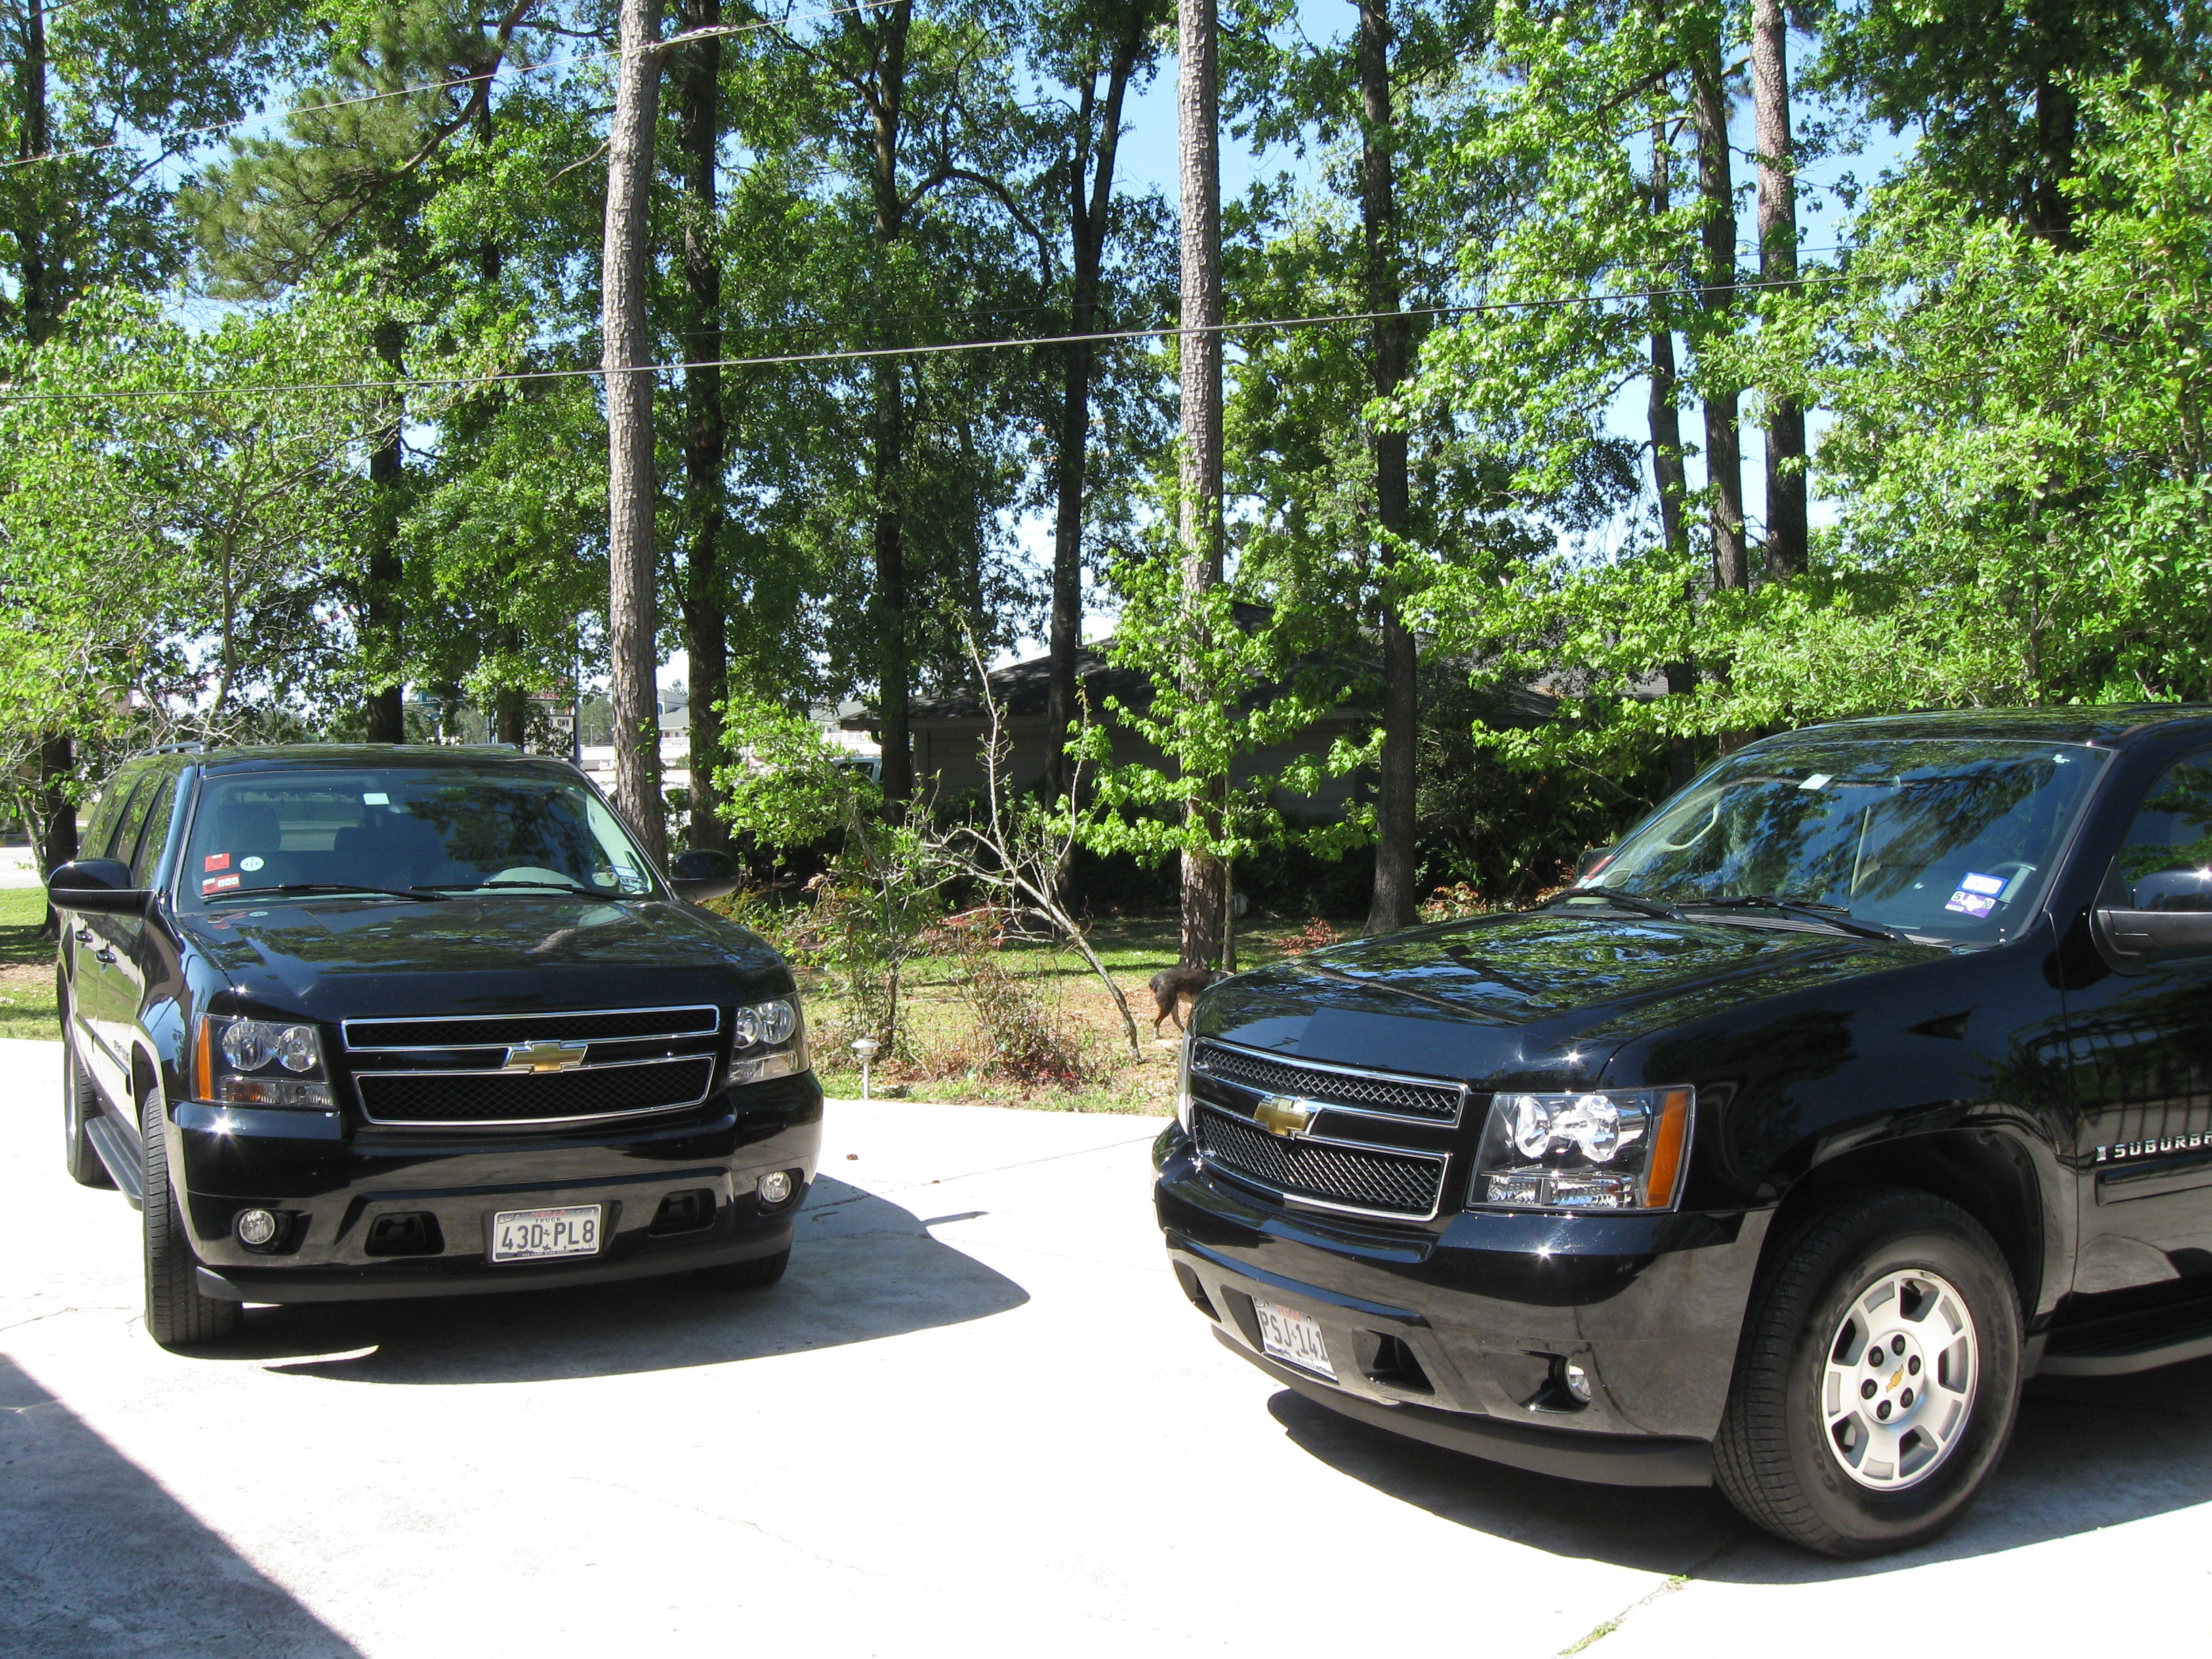 black, Wedding, Transportation, inc, Corporate limousines of tx, Suvs